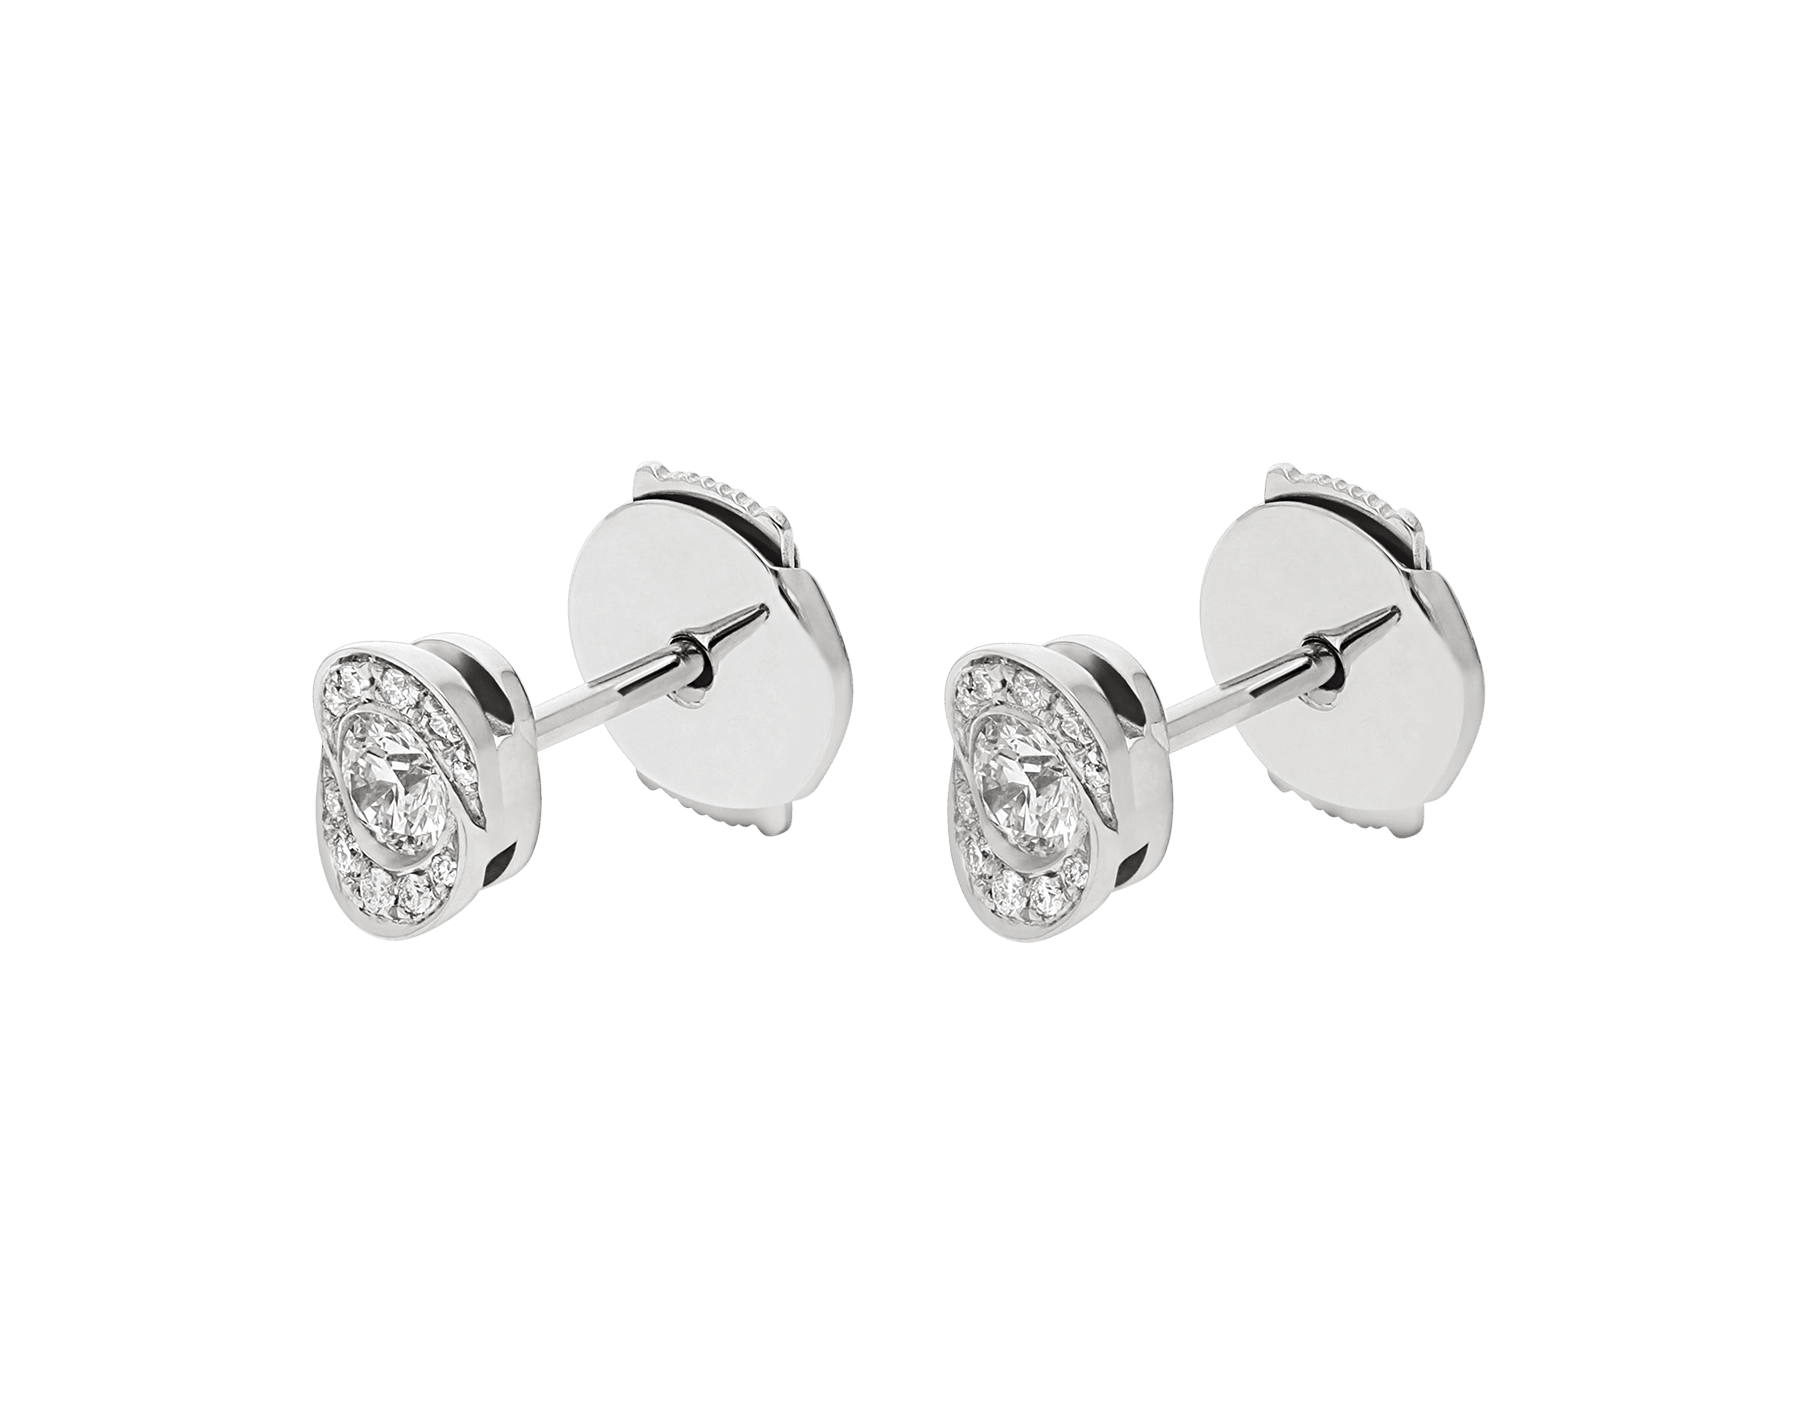 Incontro d'Amore earrings in 18 kt white gold set with two central diamonds and pavé diamonds. 355250 image 2